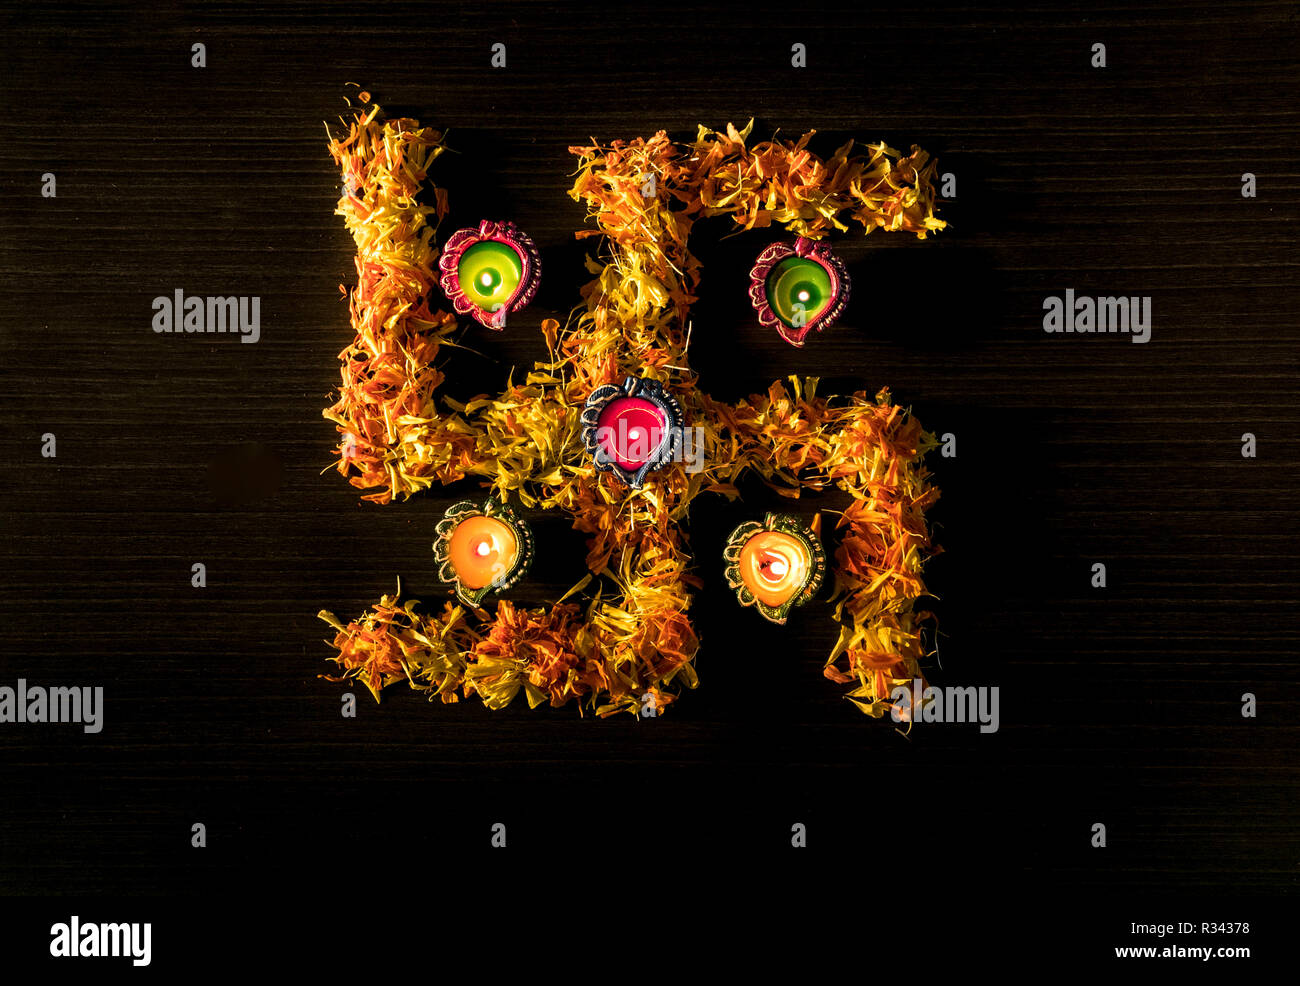 5 colourful diyas placed on table to celebrate diwali and dhanteras festival in India Stock Photo